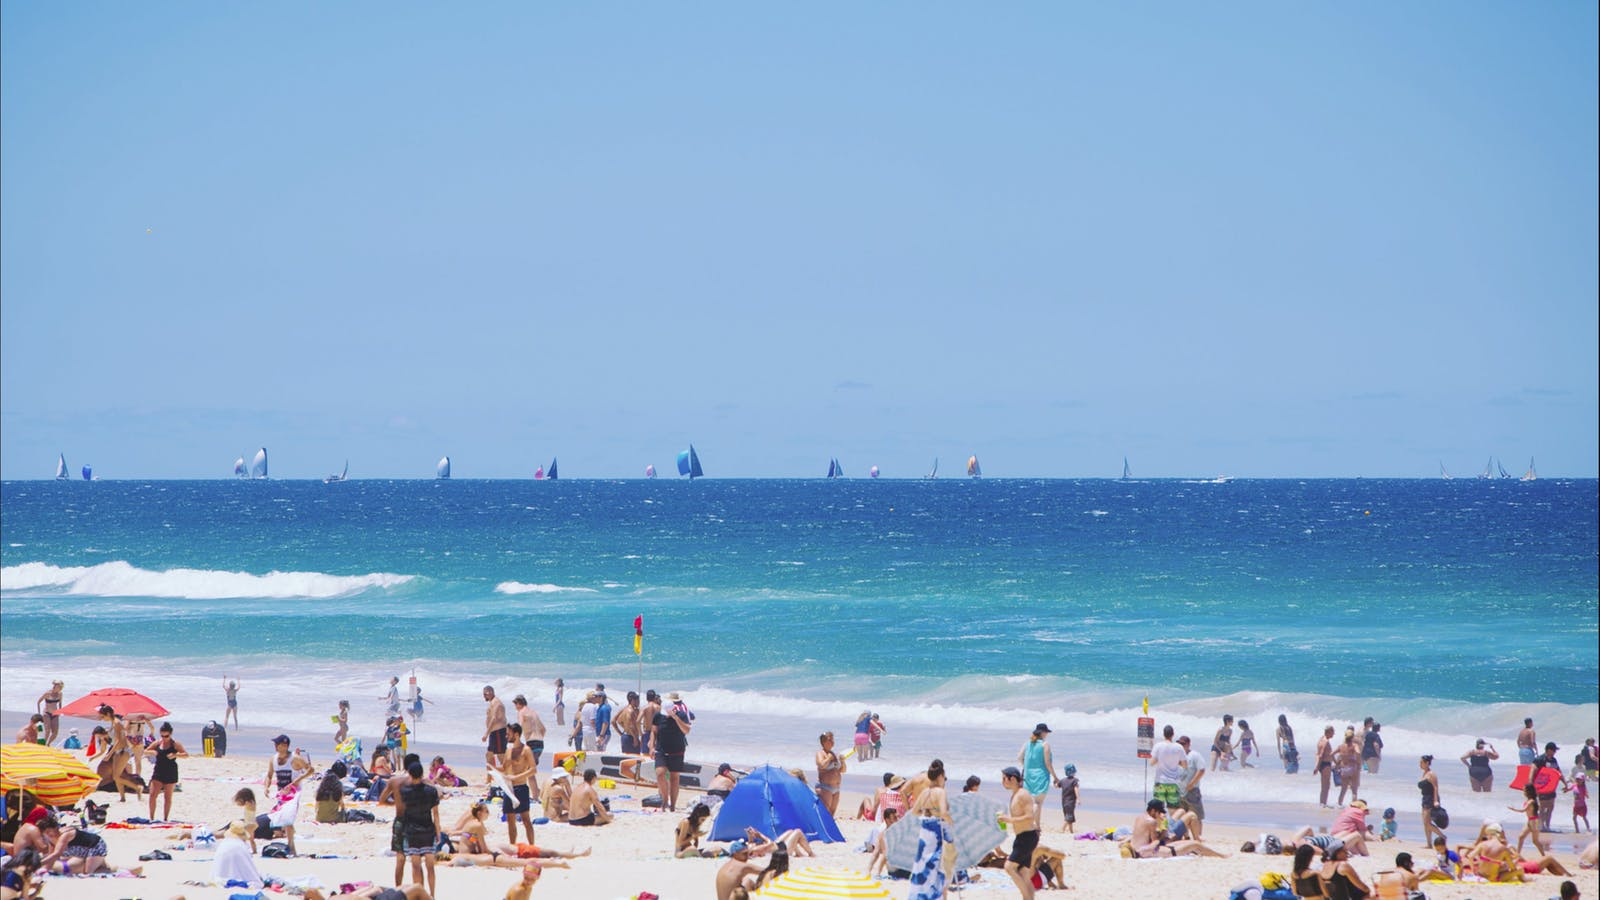 People at Surfers Paradise